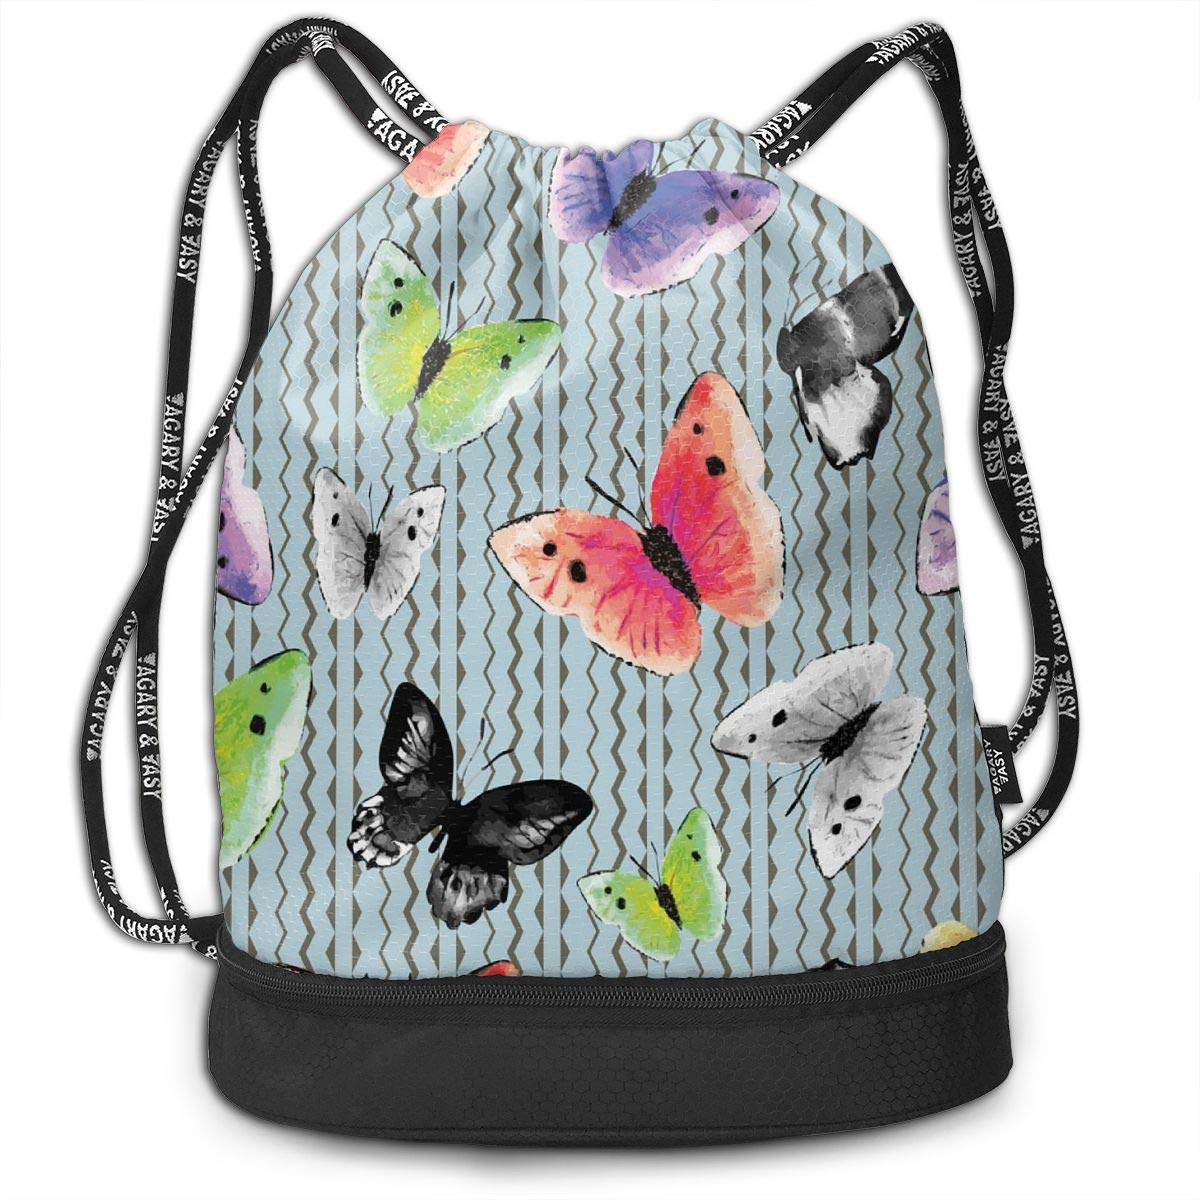 Watercolor Monochrome and Multicolored Butterflies Fashion Outdoor Shopping Canvas Backpack Bundle Pocket Backpack Rope-Pulling Bag Sports Bag for Fitness Shopping Yoga